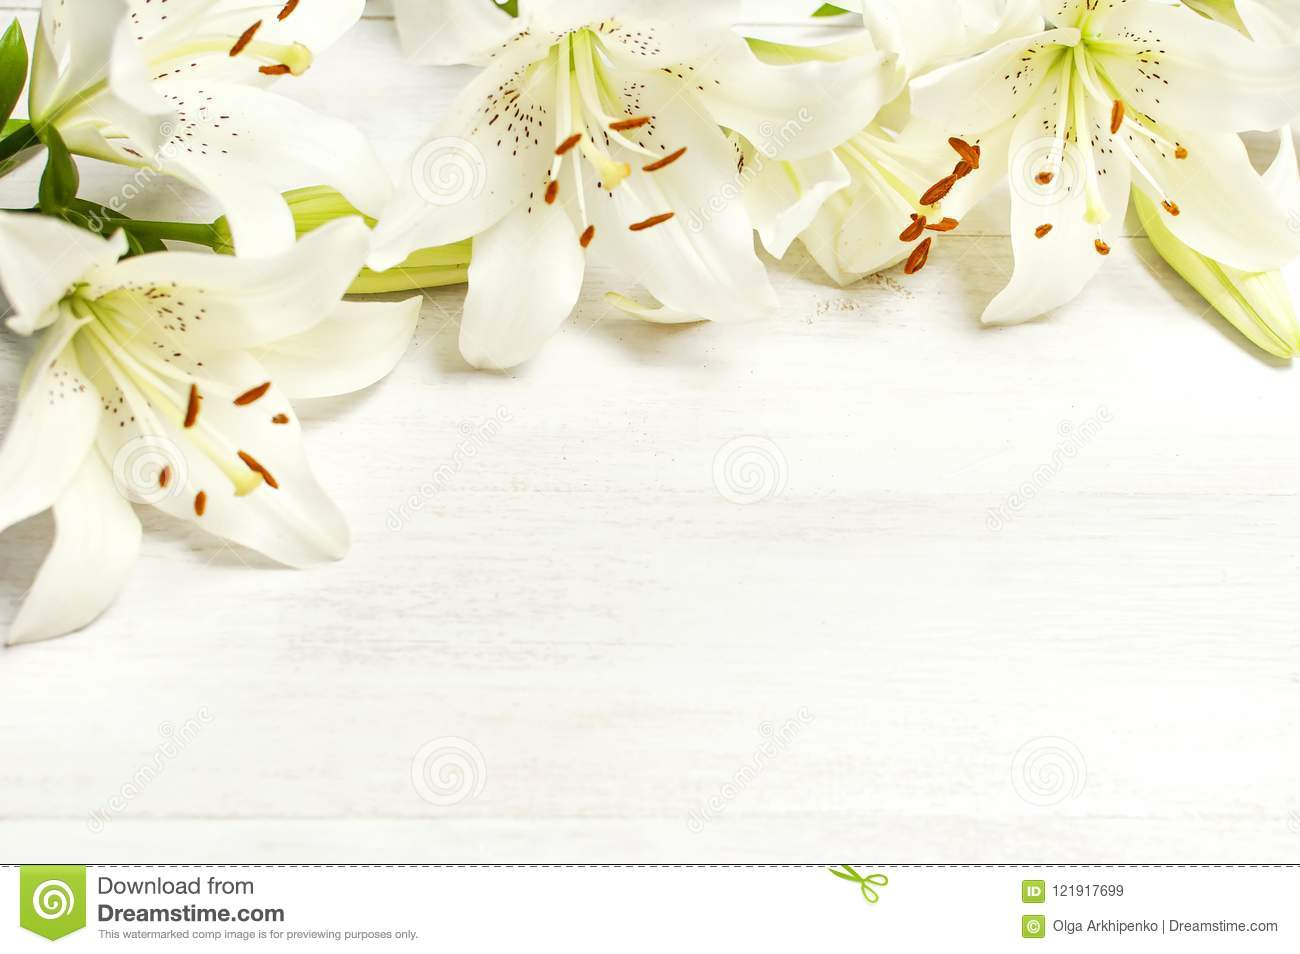 Frame of white lilies on a white wooden background top view flowers frame of white lilies on a white wooden background top view flowers lily beautiful bouquet white flowers floral background concept holiday izmirmasajfo